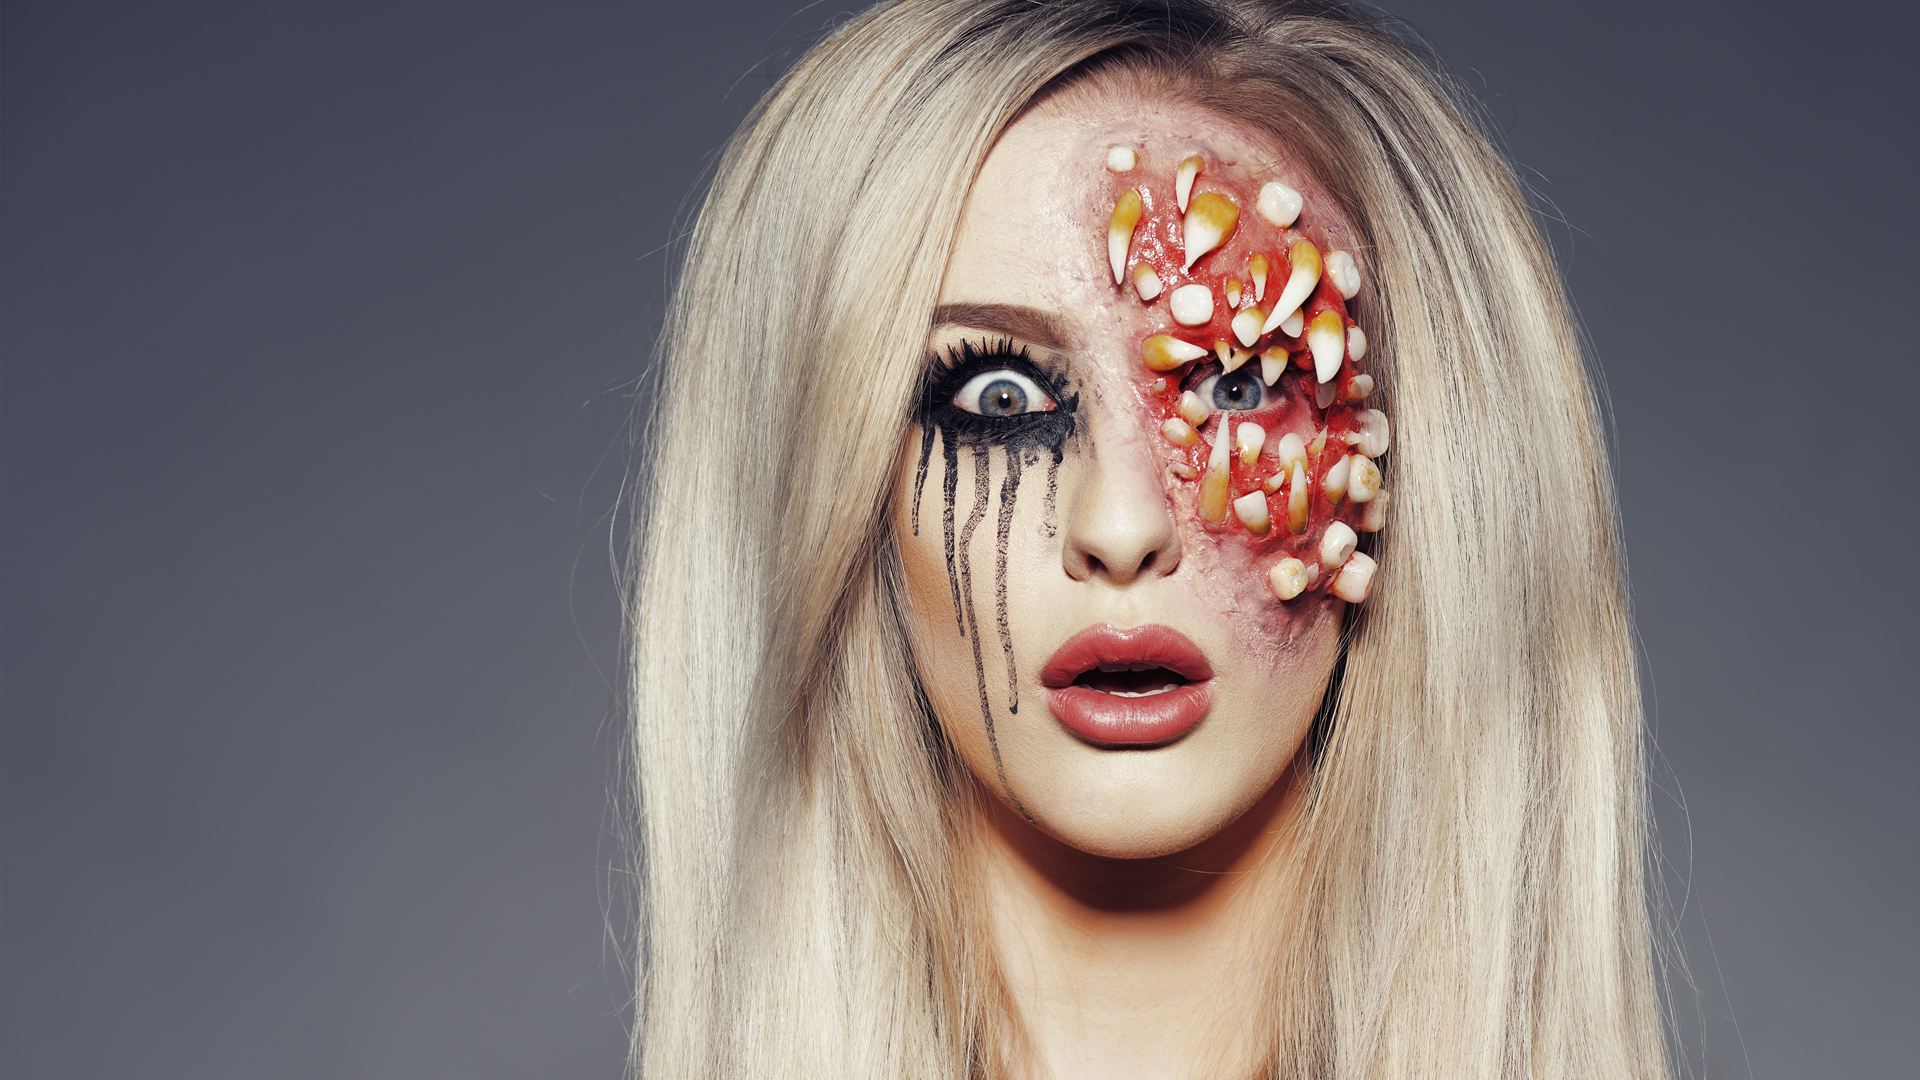 Fx makeup school uk